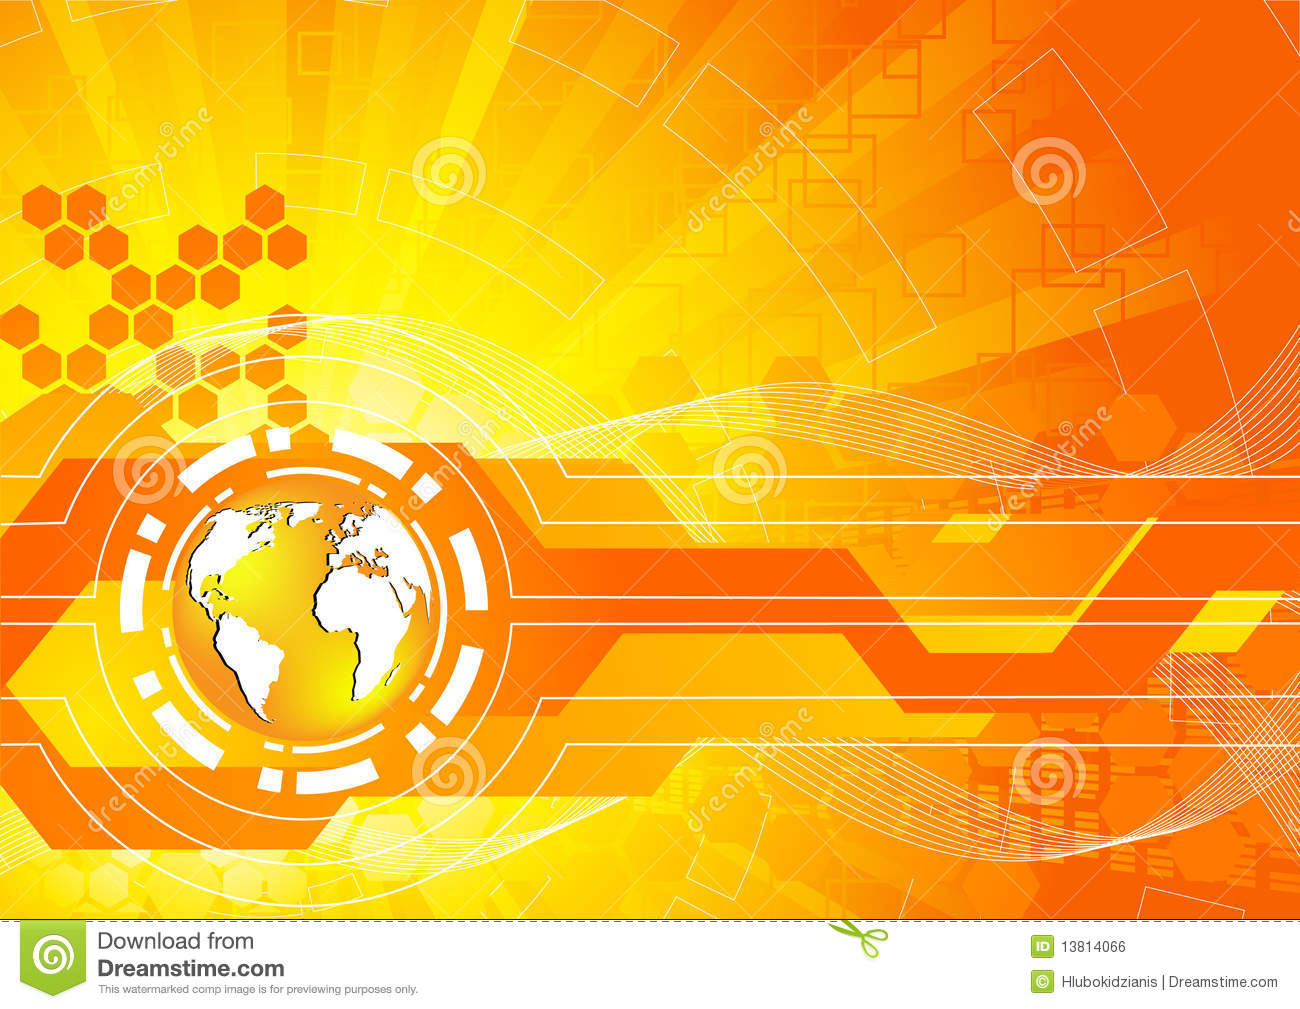 Bright Orange Background Royalty Free Stock Image - Image: 13814066